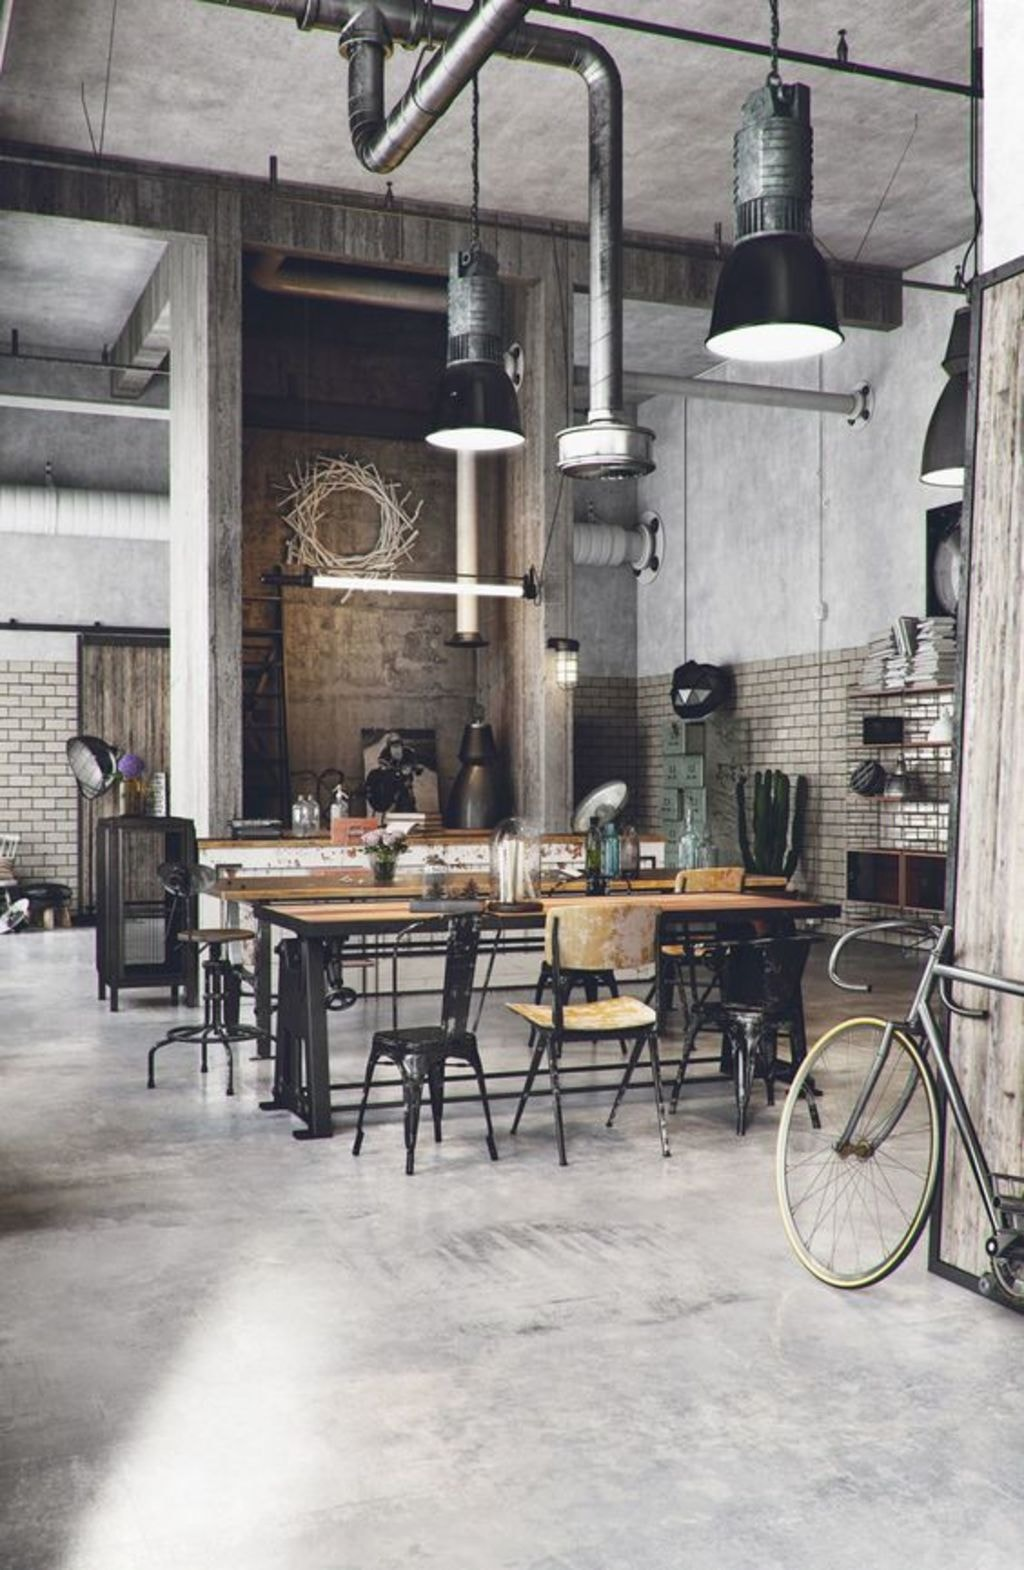 Get Into the Nitty-Gritty of Industrial Interior Design Styl... via speedframe